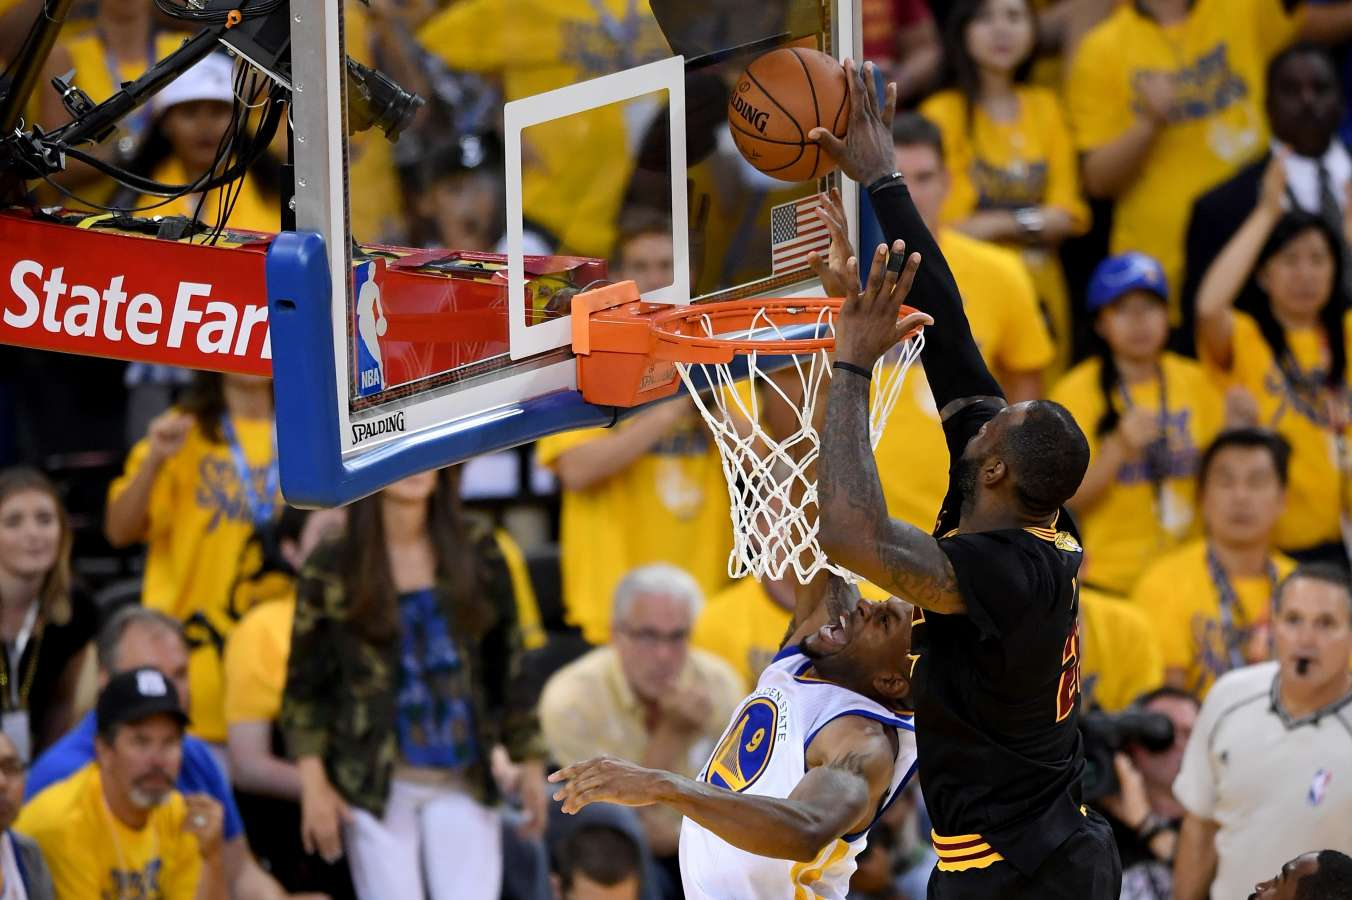 Cavaliers vs Warriors: Unforgettable moments from an epic rivalry